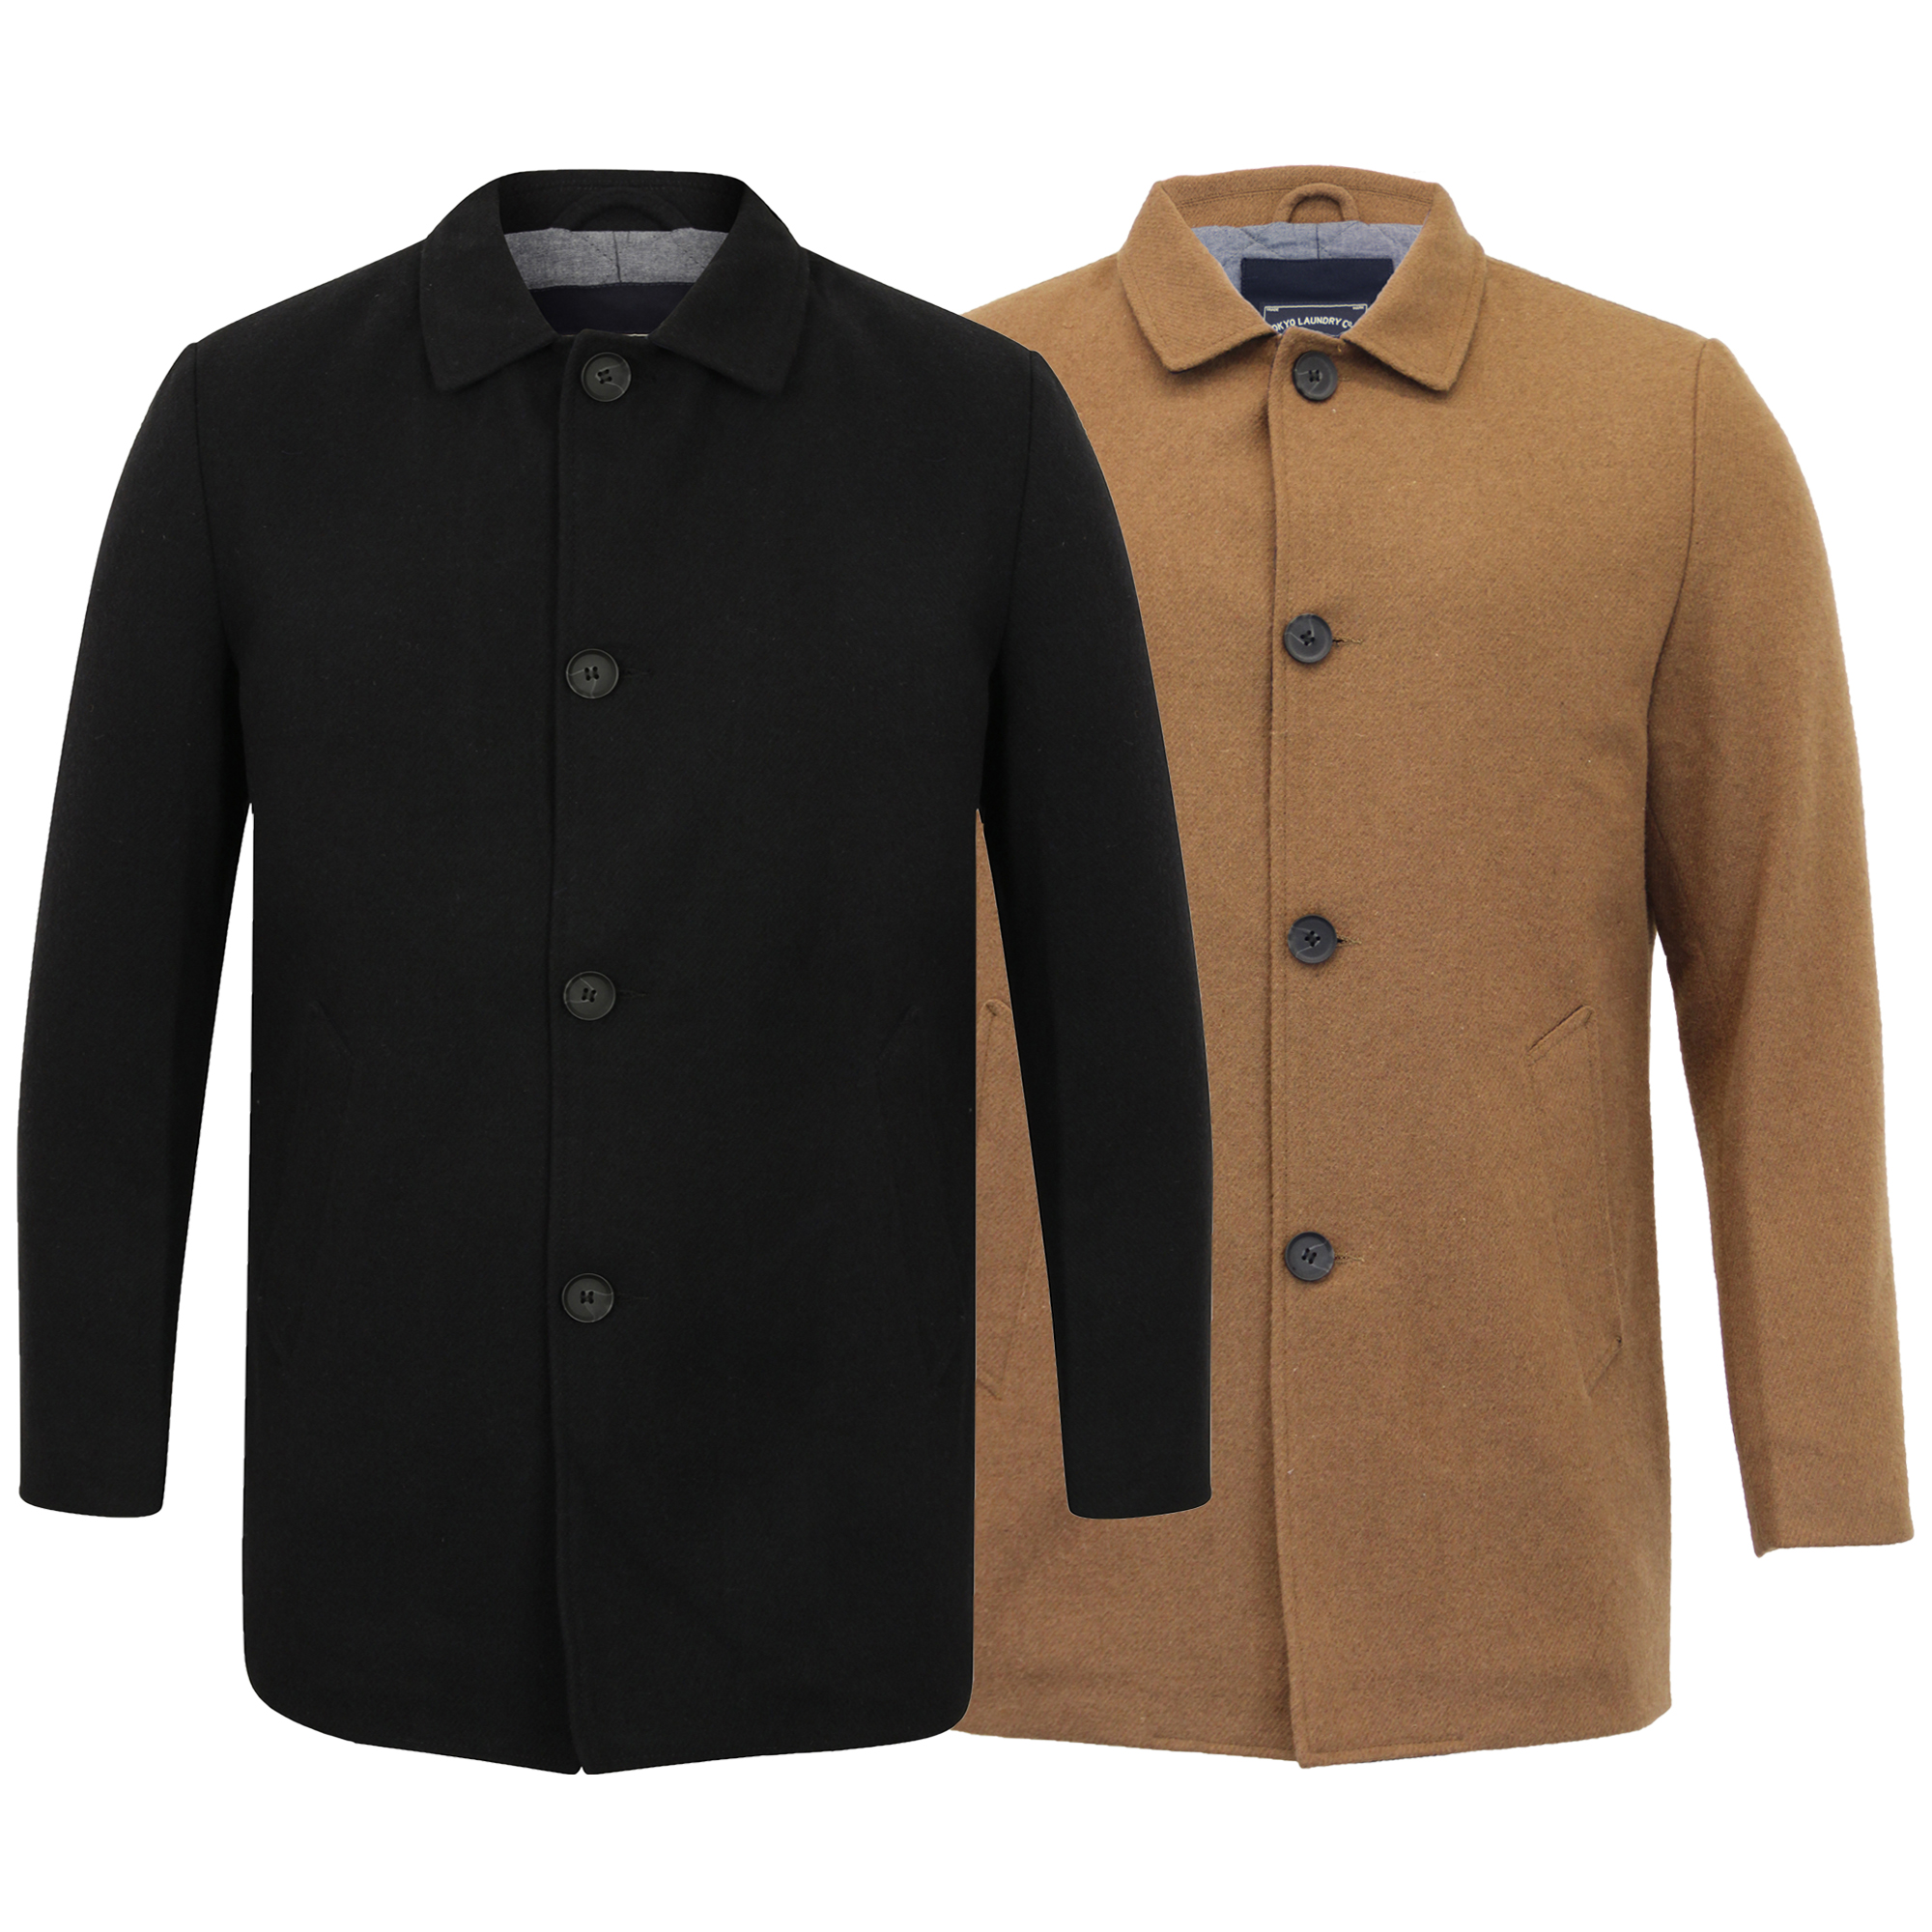 581e68c186ff Mens Wool Blend Jacket Tokyo Laundry Trench Coat Collared Button ...